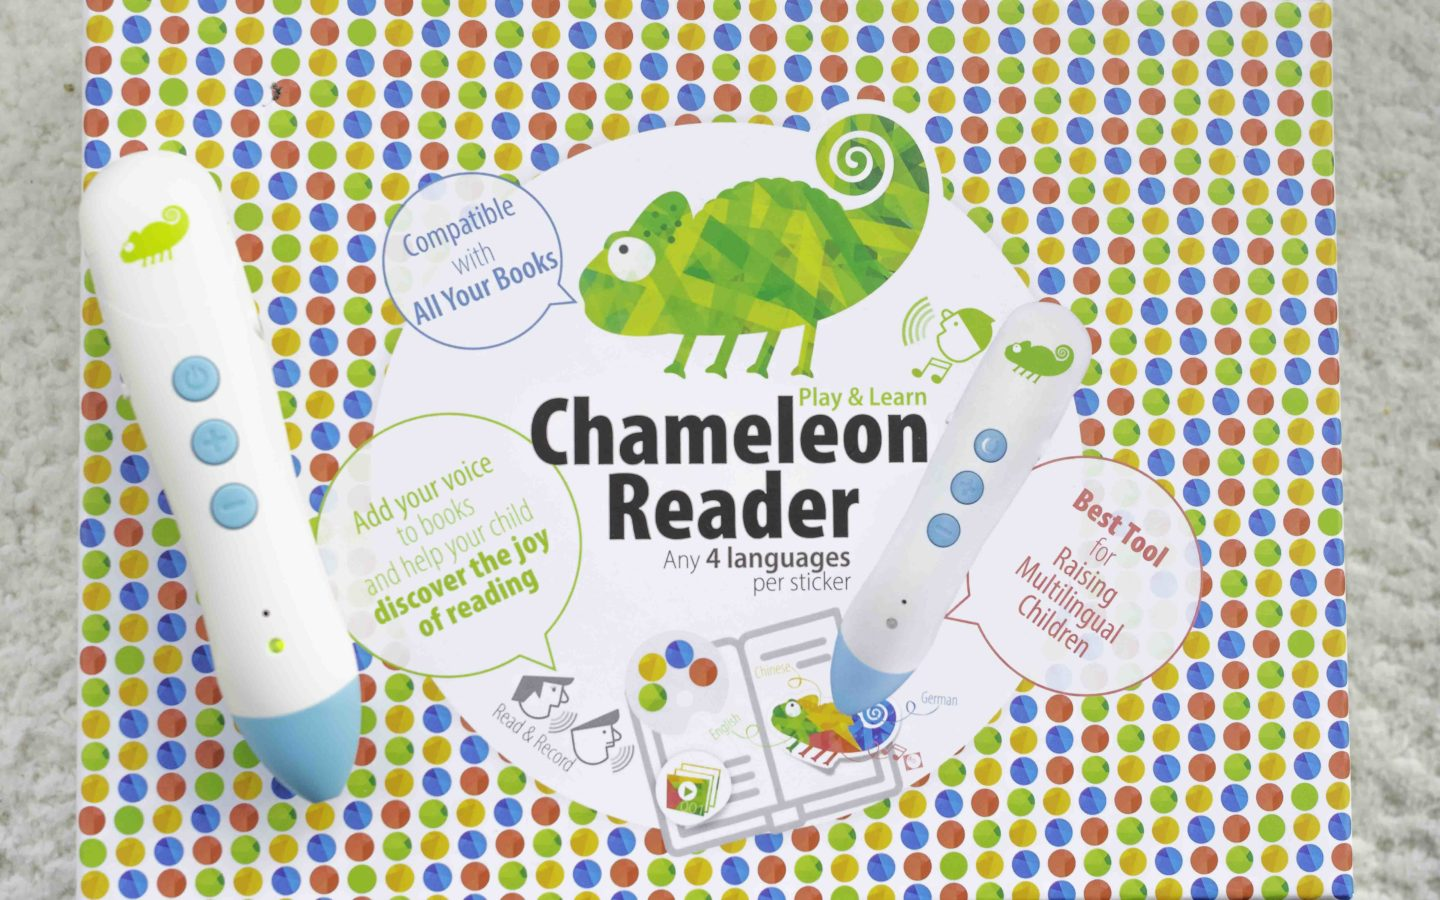 The Chameleon Reader set includes everything you need to get started.